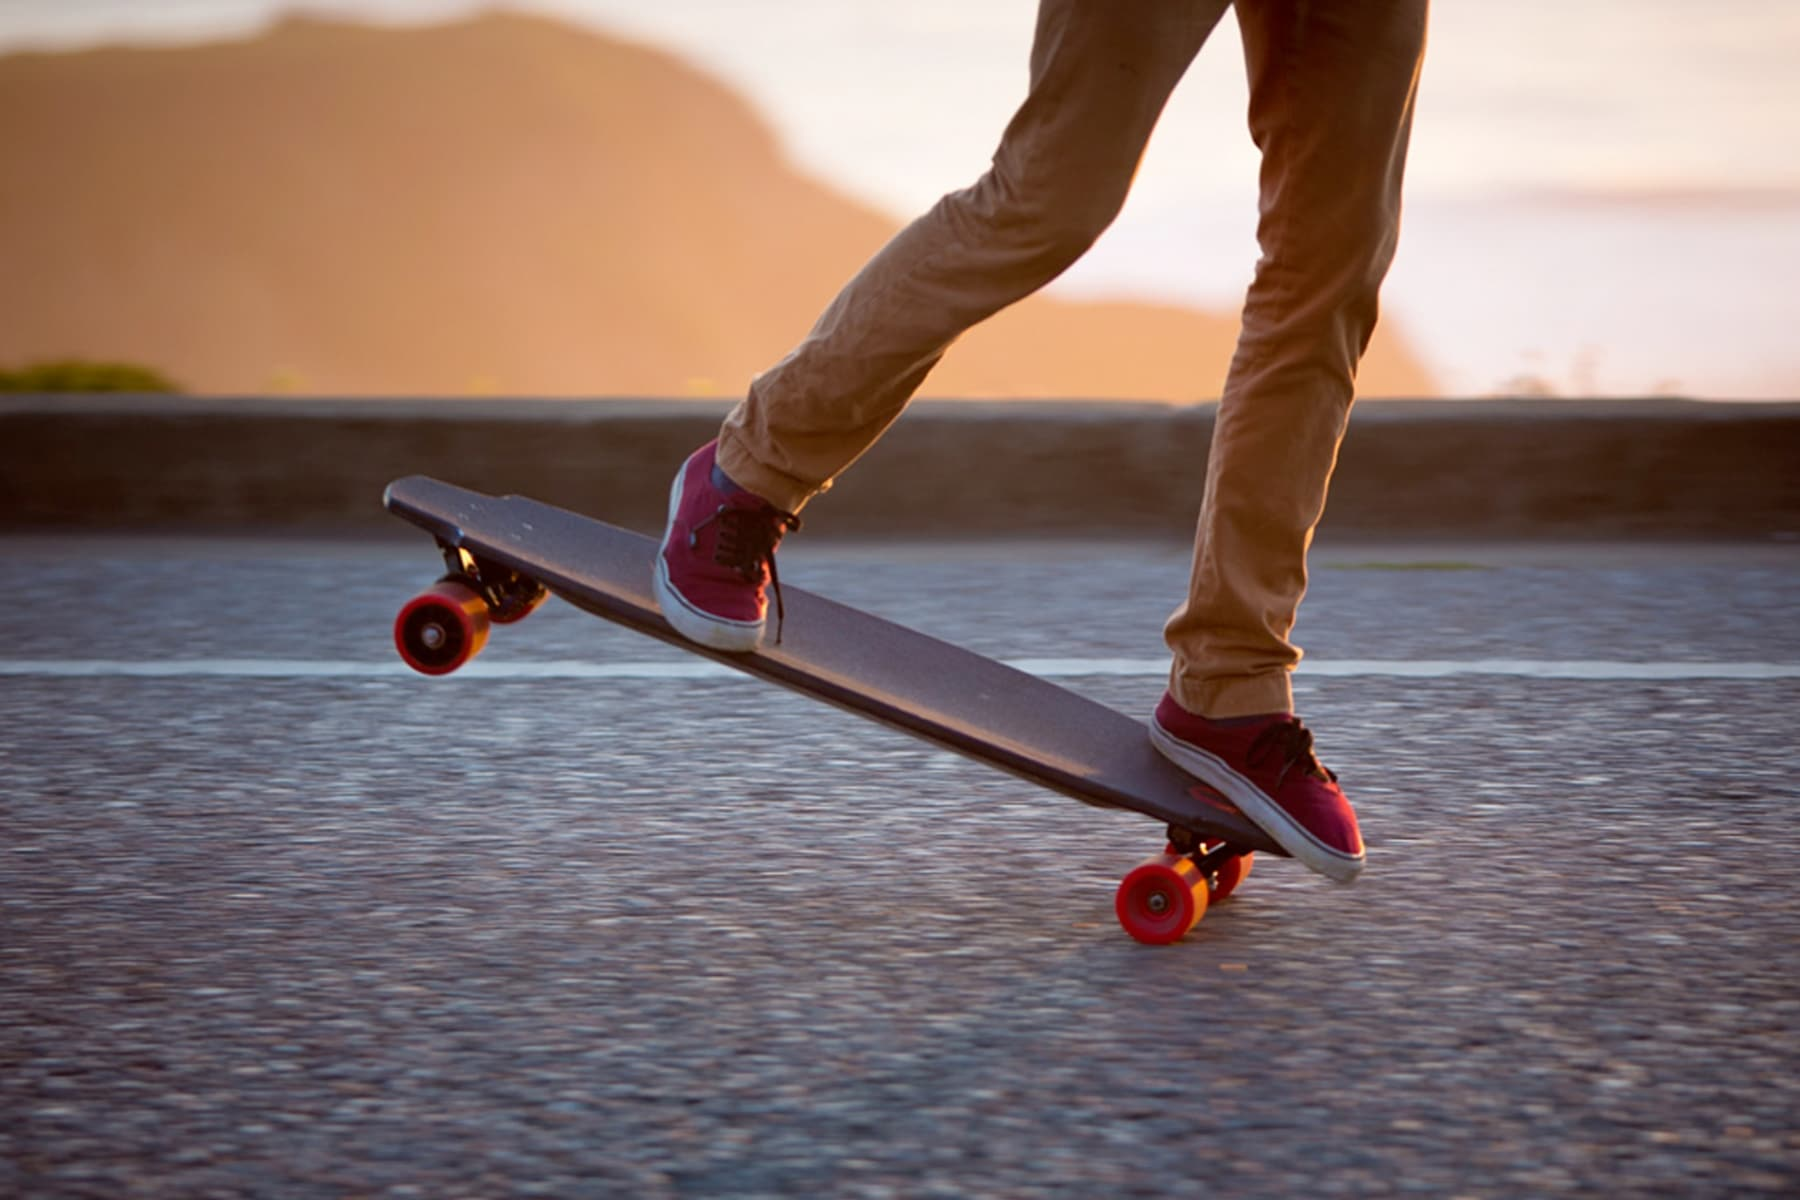 10 Most Popular Electric Skateboards for Teens [Buying Guide] 12